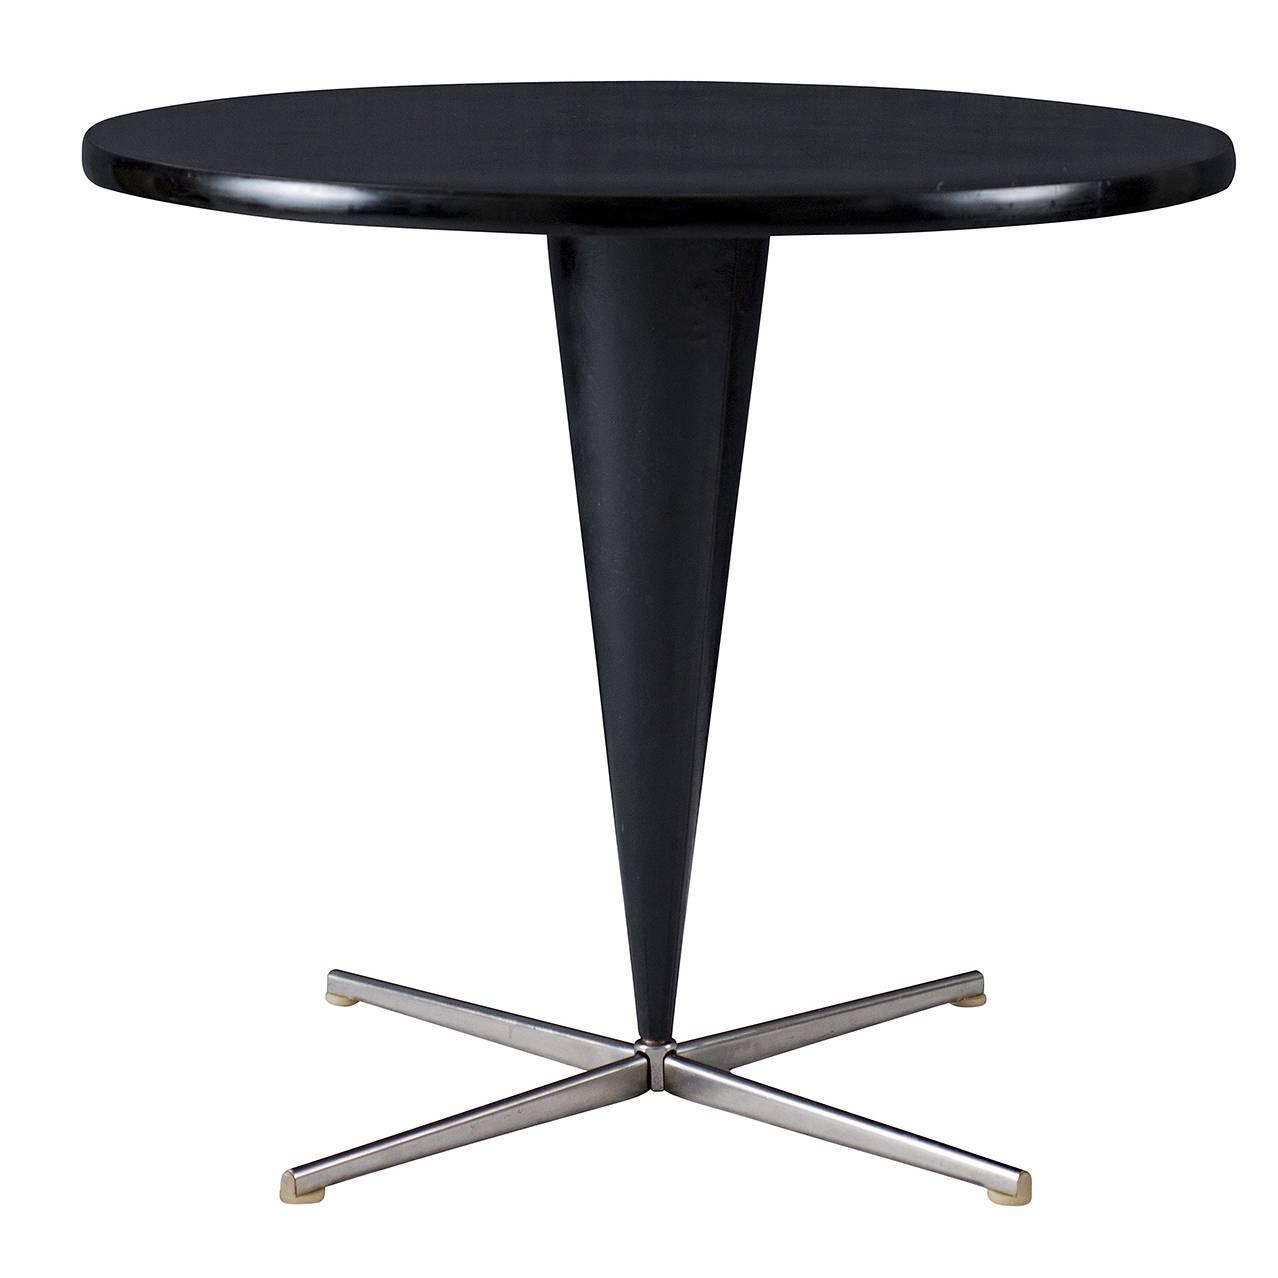 verner panton cone table for sale at 1stdibs